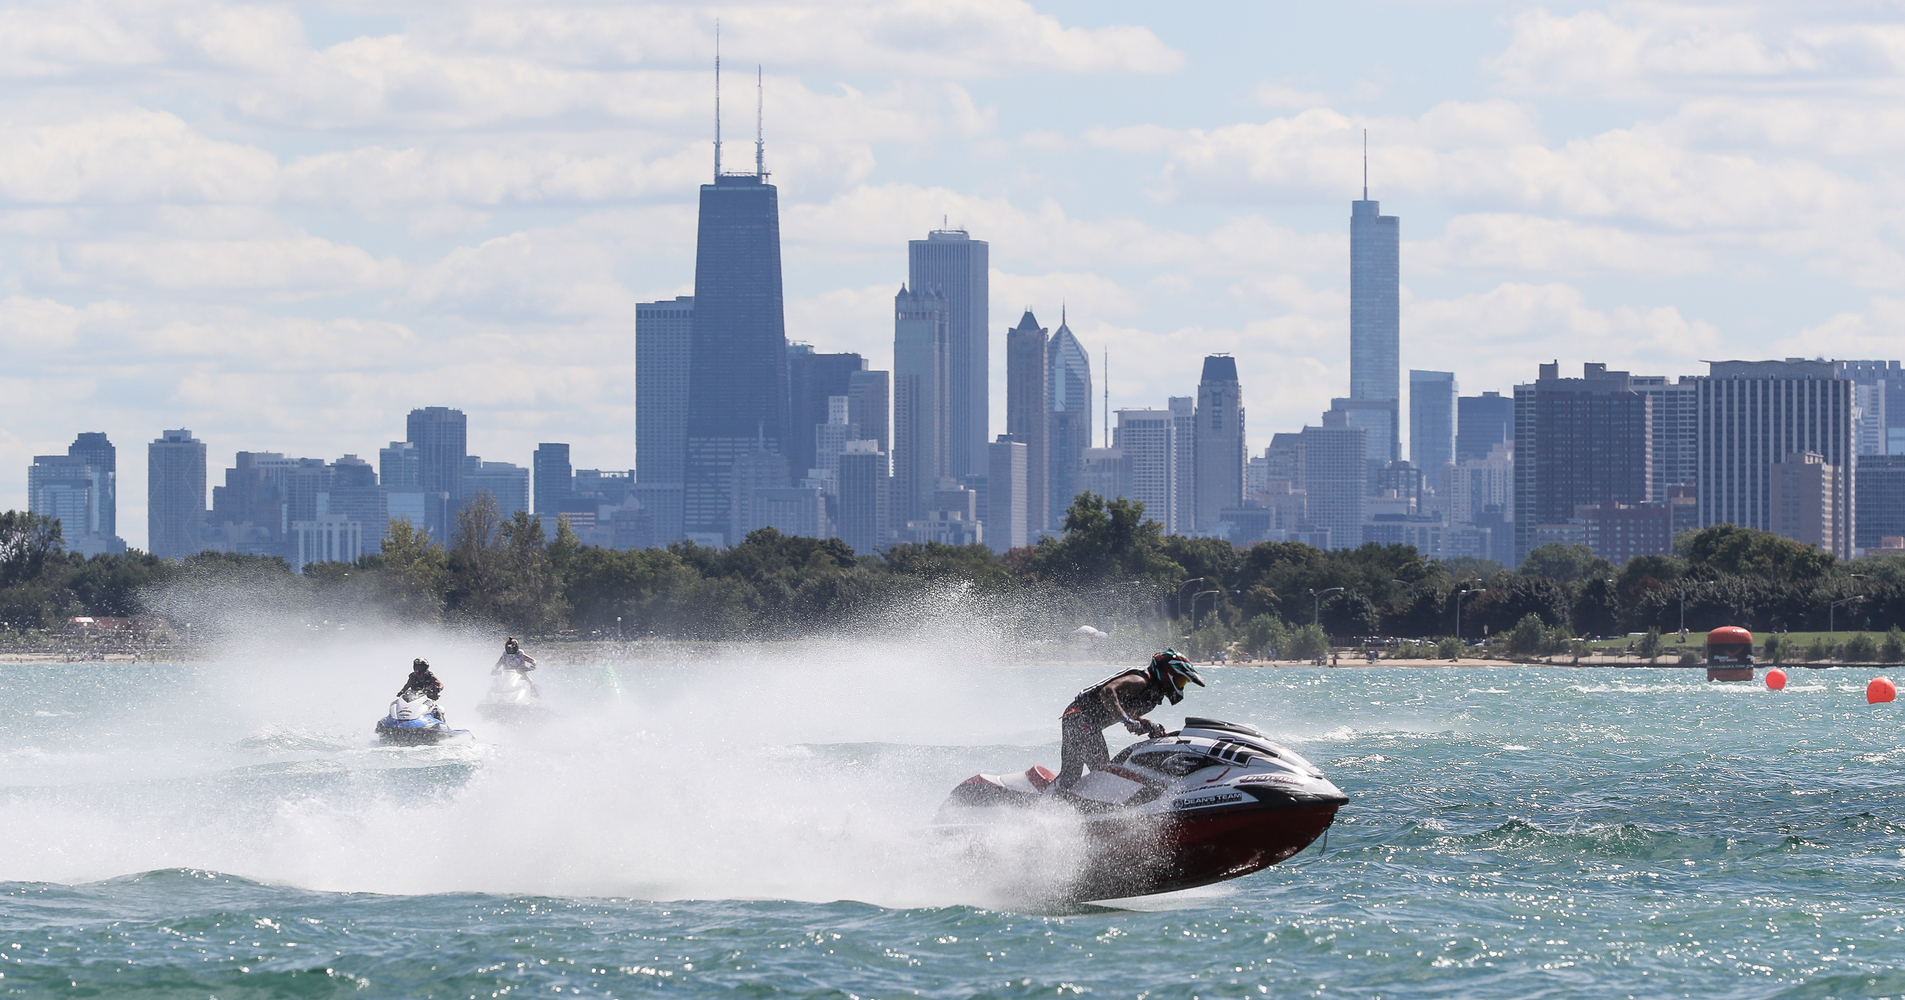 AquaX racing returns to Chicago in September after a successful debut in 2016